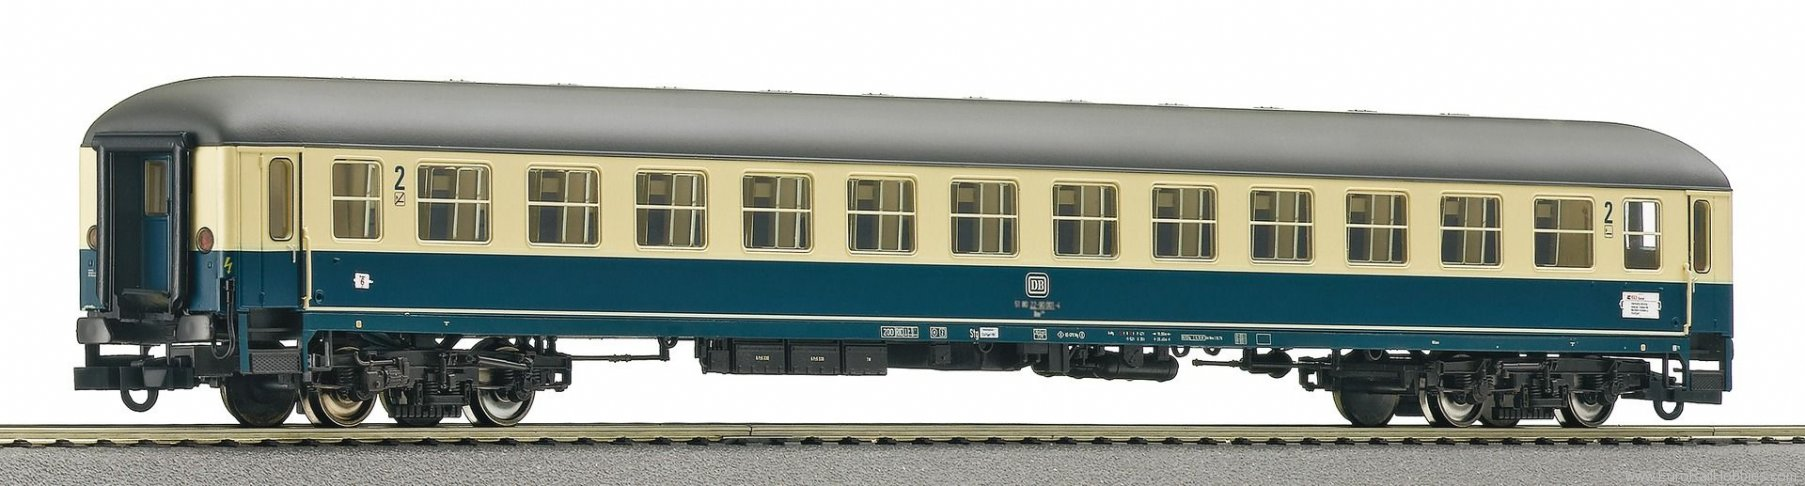 Roco 64509 DB Intercity Compartment Coach Bm235 2 Class